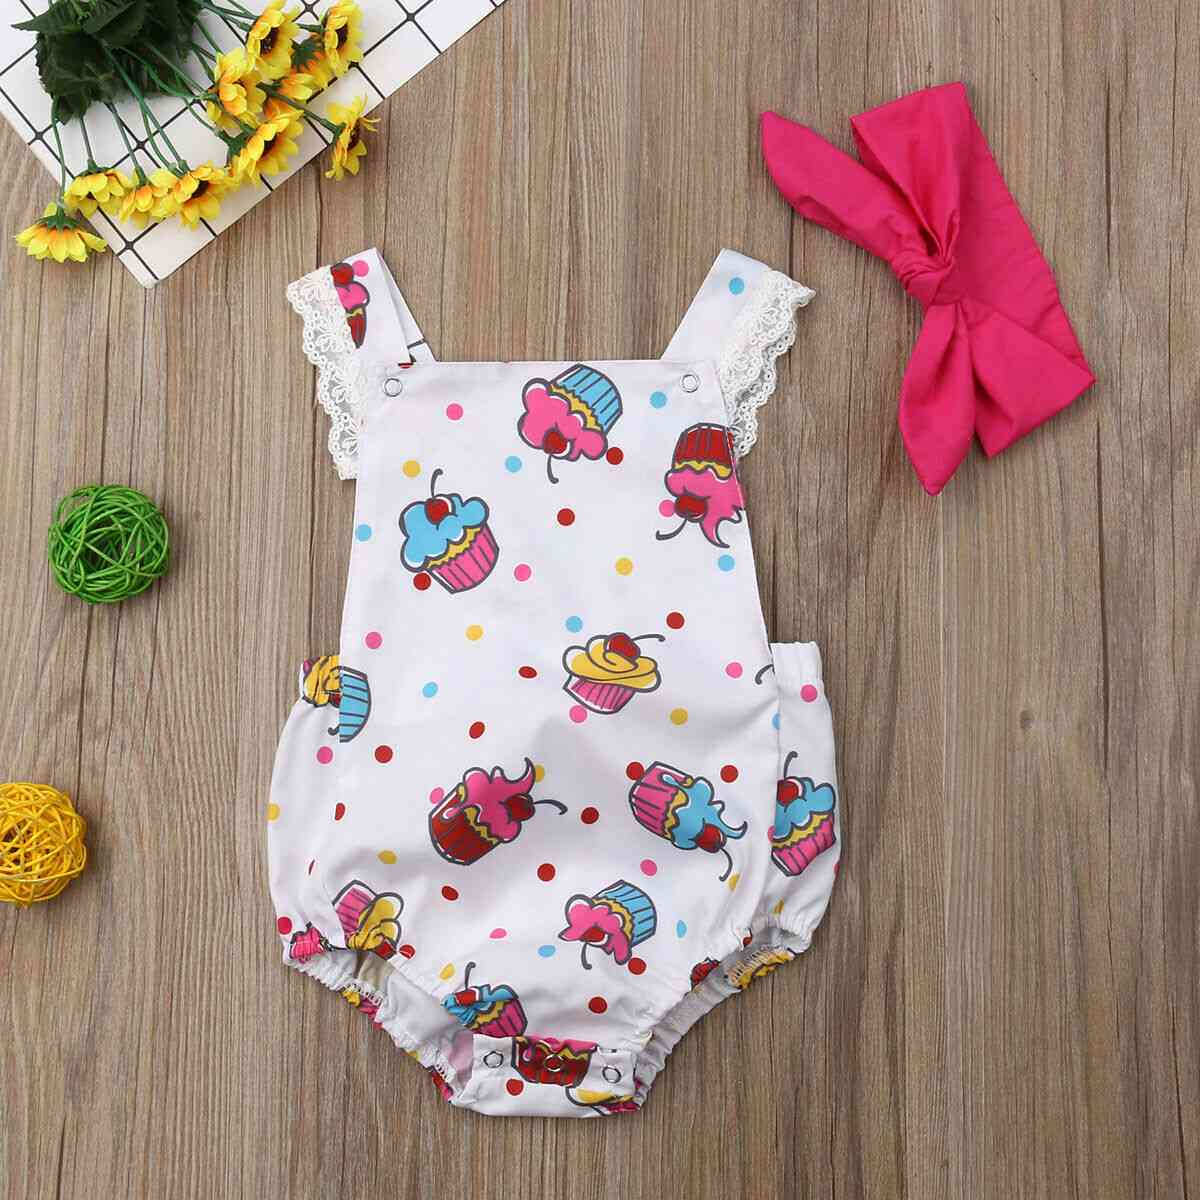 Baby Girl Clothes Ice Cream Print Sleeveless Bodysuit Headband Outfit Clothes Sunsuit